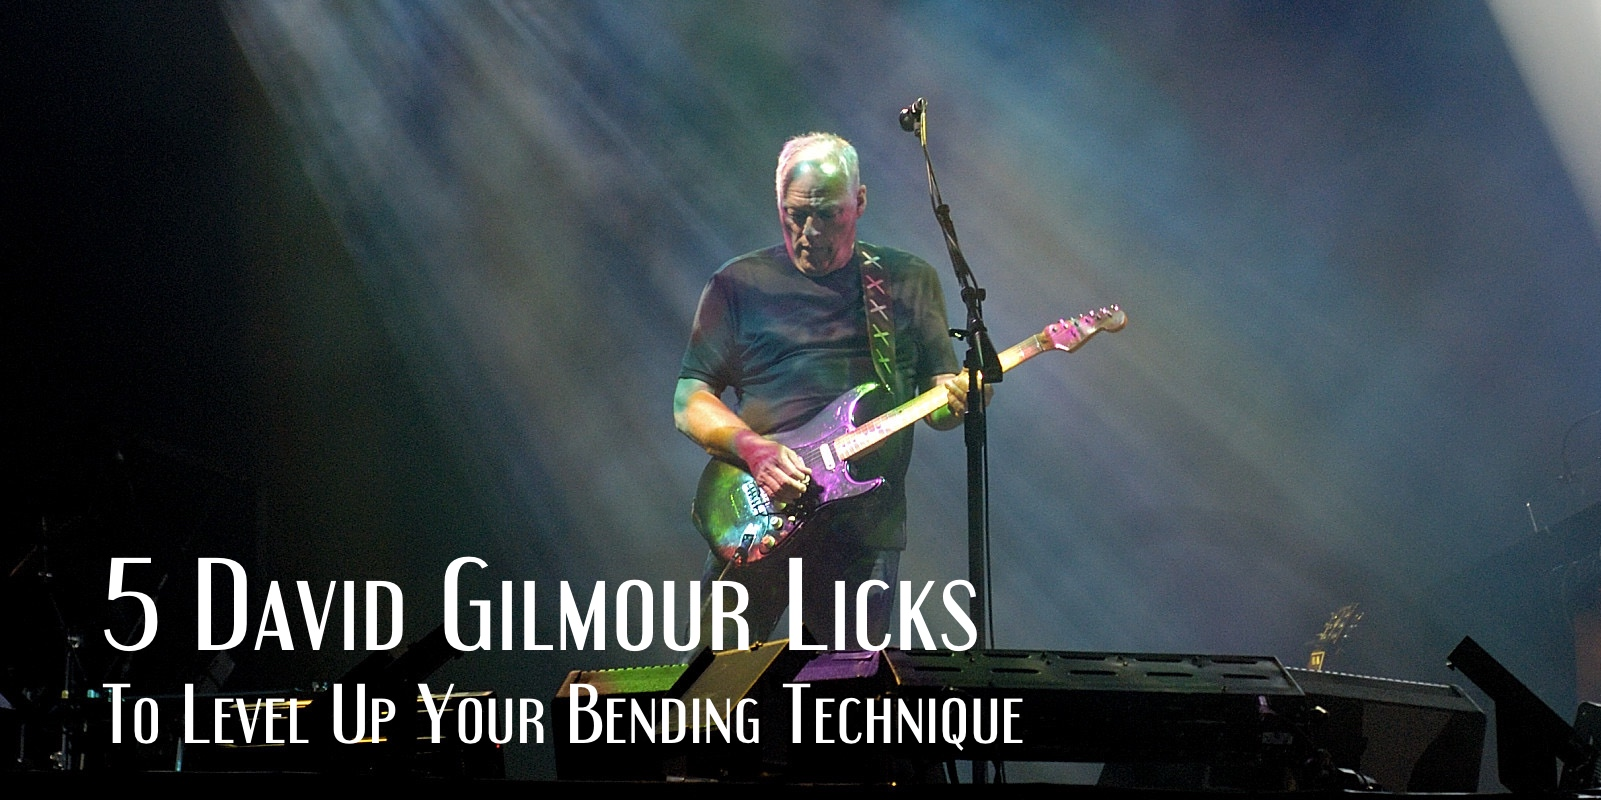 David Gilmour licks